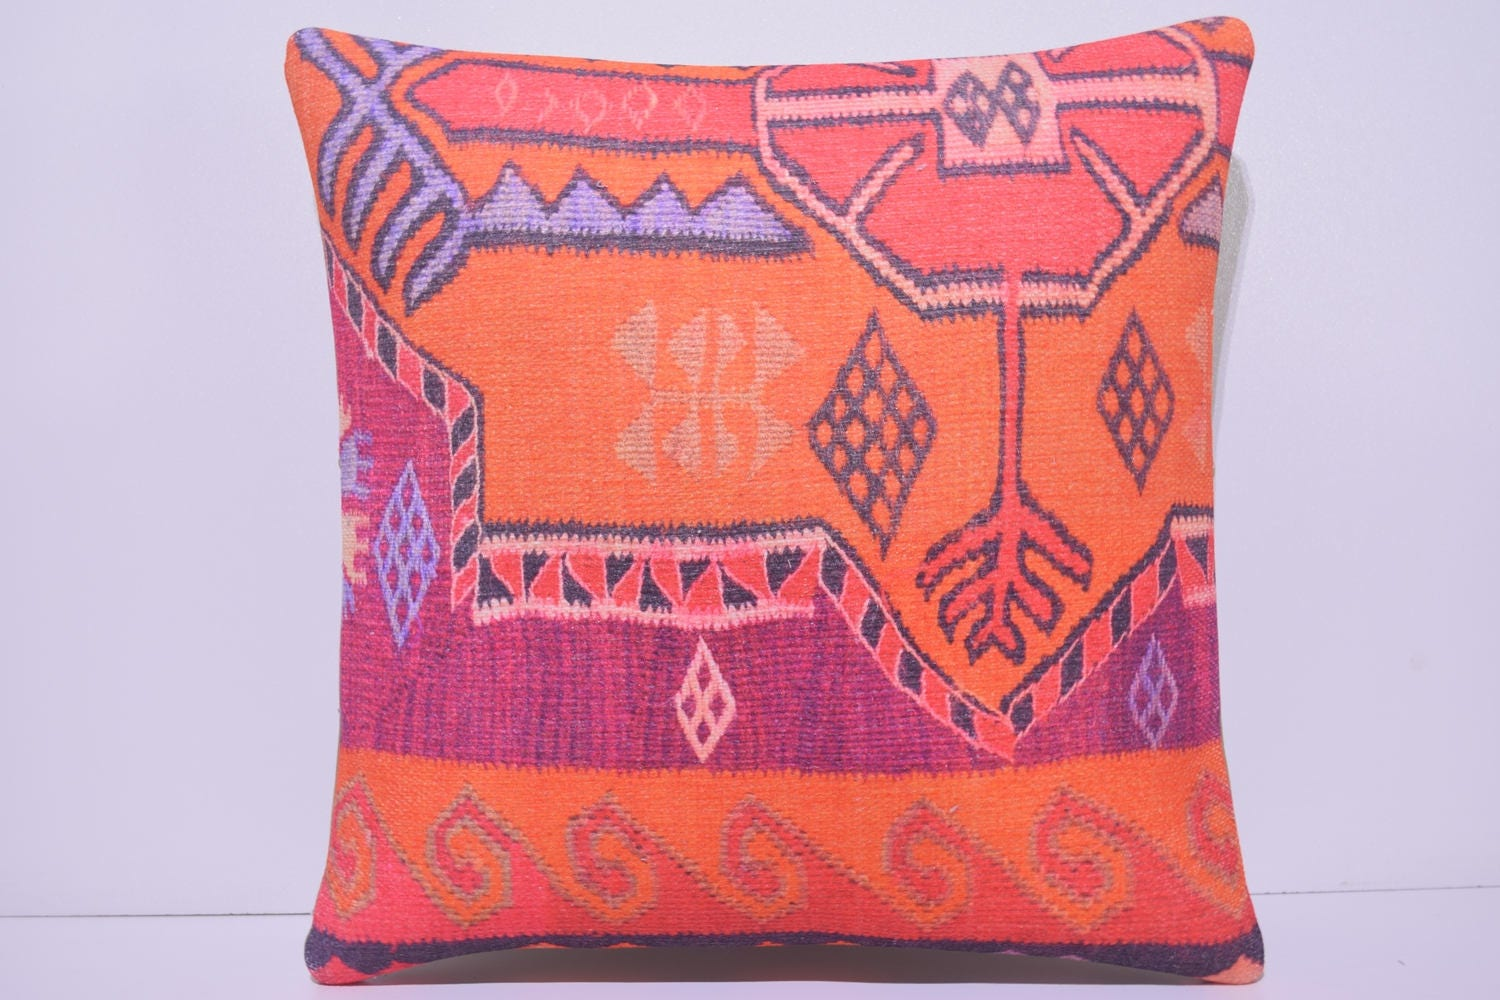 Throw Pillow Bulk : 18x18 modern decorative pillow wholesale throw pillow